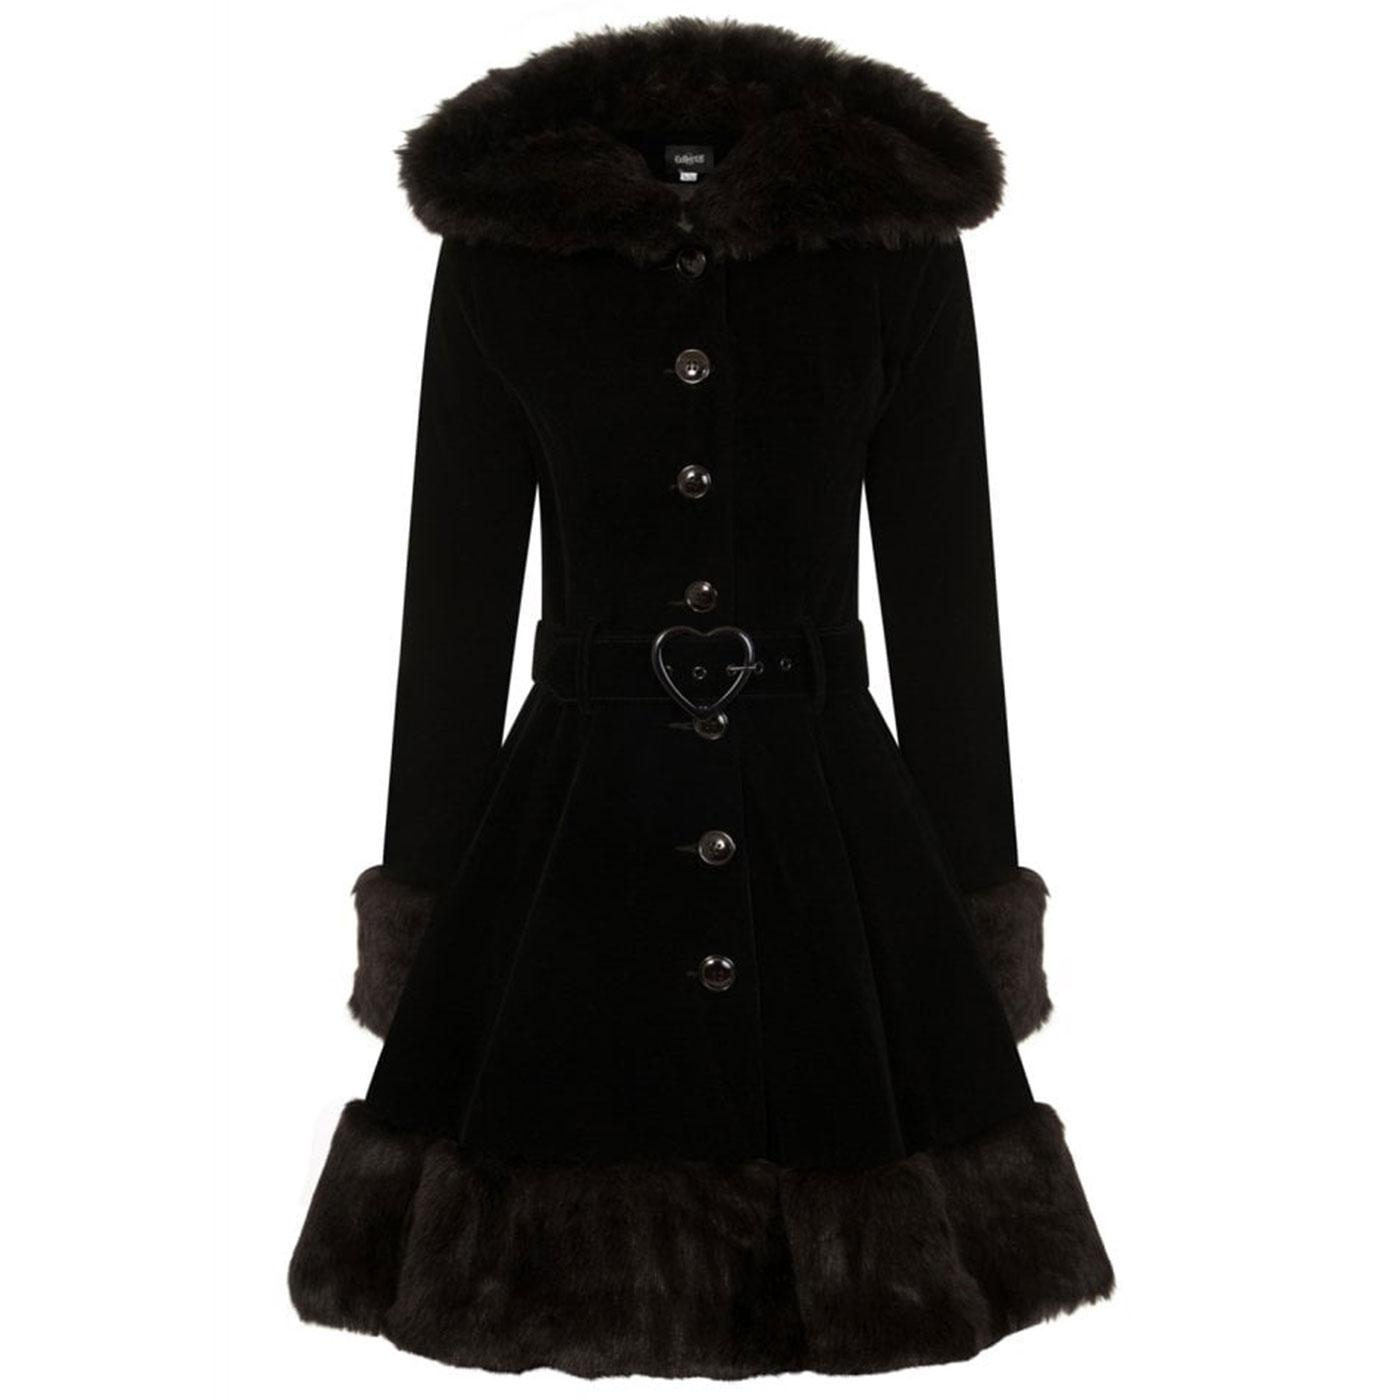 Laila COLLECTIF Retro Hooded Short Velvet Coat